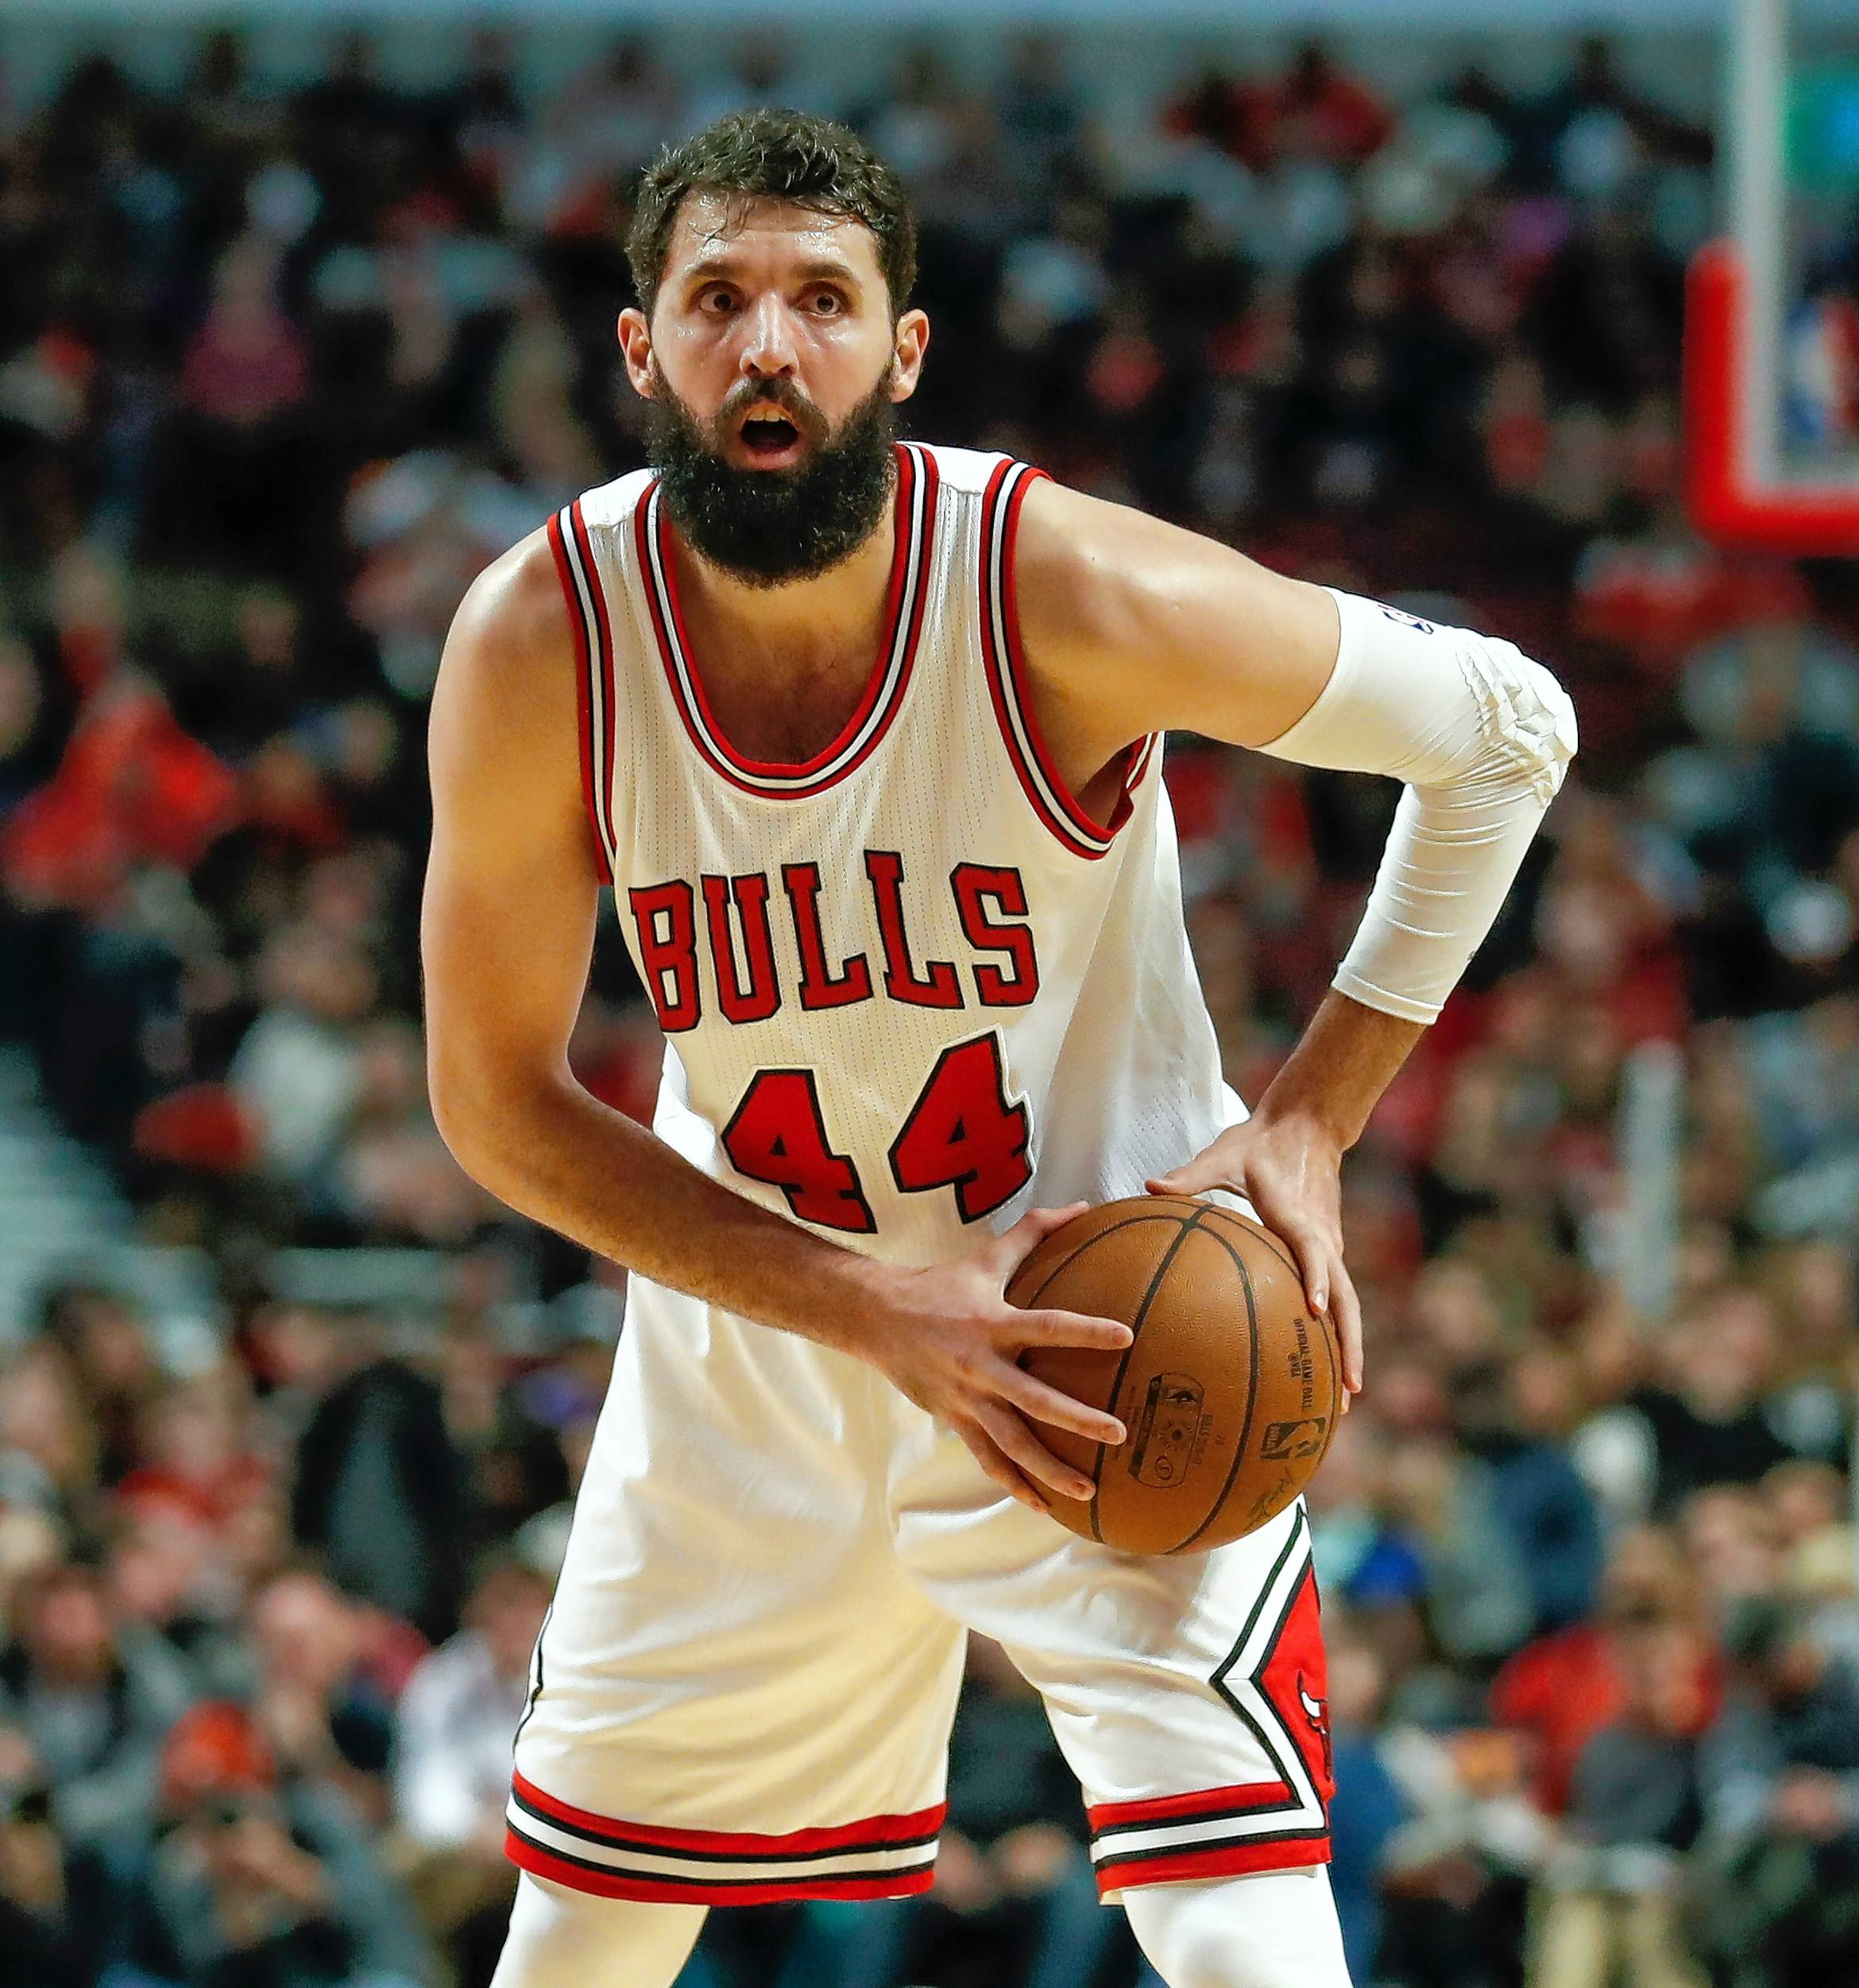 Forward Nikola Mirotic is likely to make his season debut Saturday night when the Chicago Bulls host the New York Knicks.